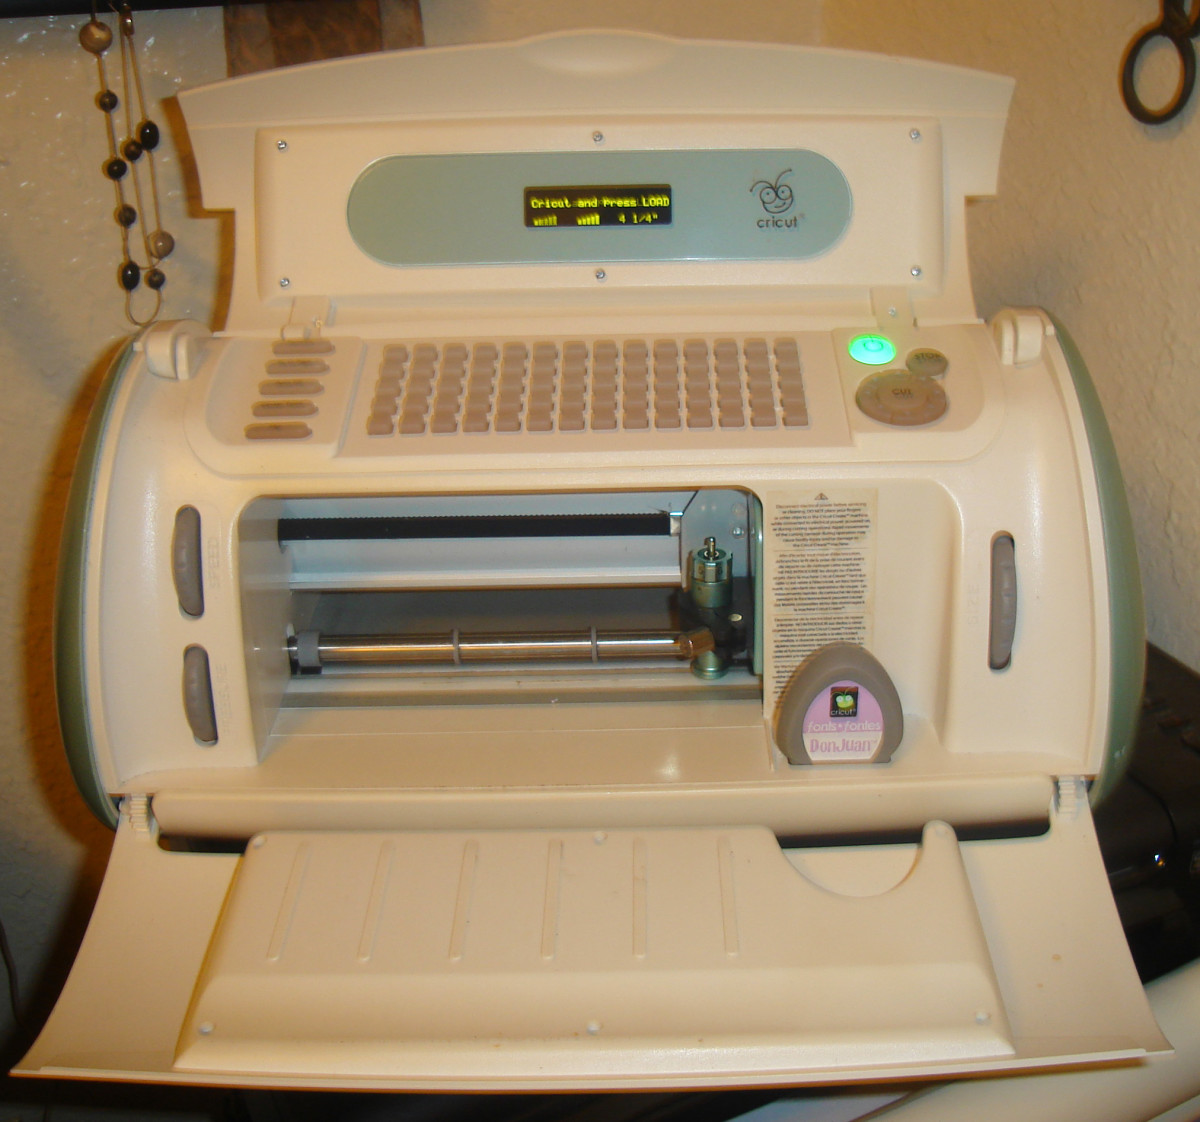 cricut machine craigslist